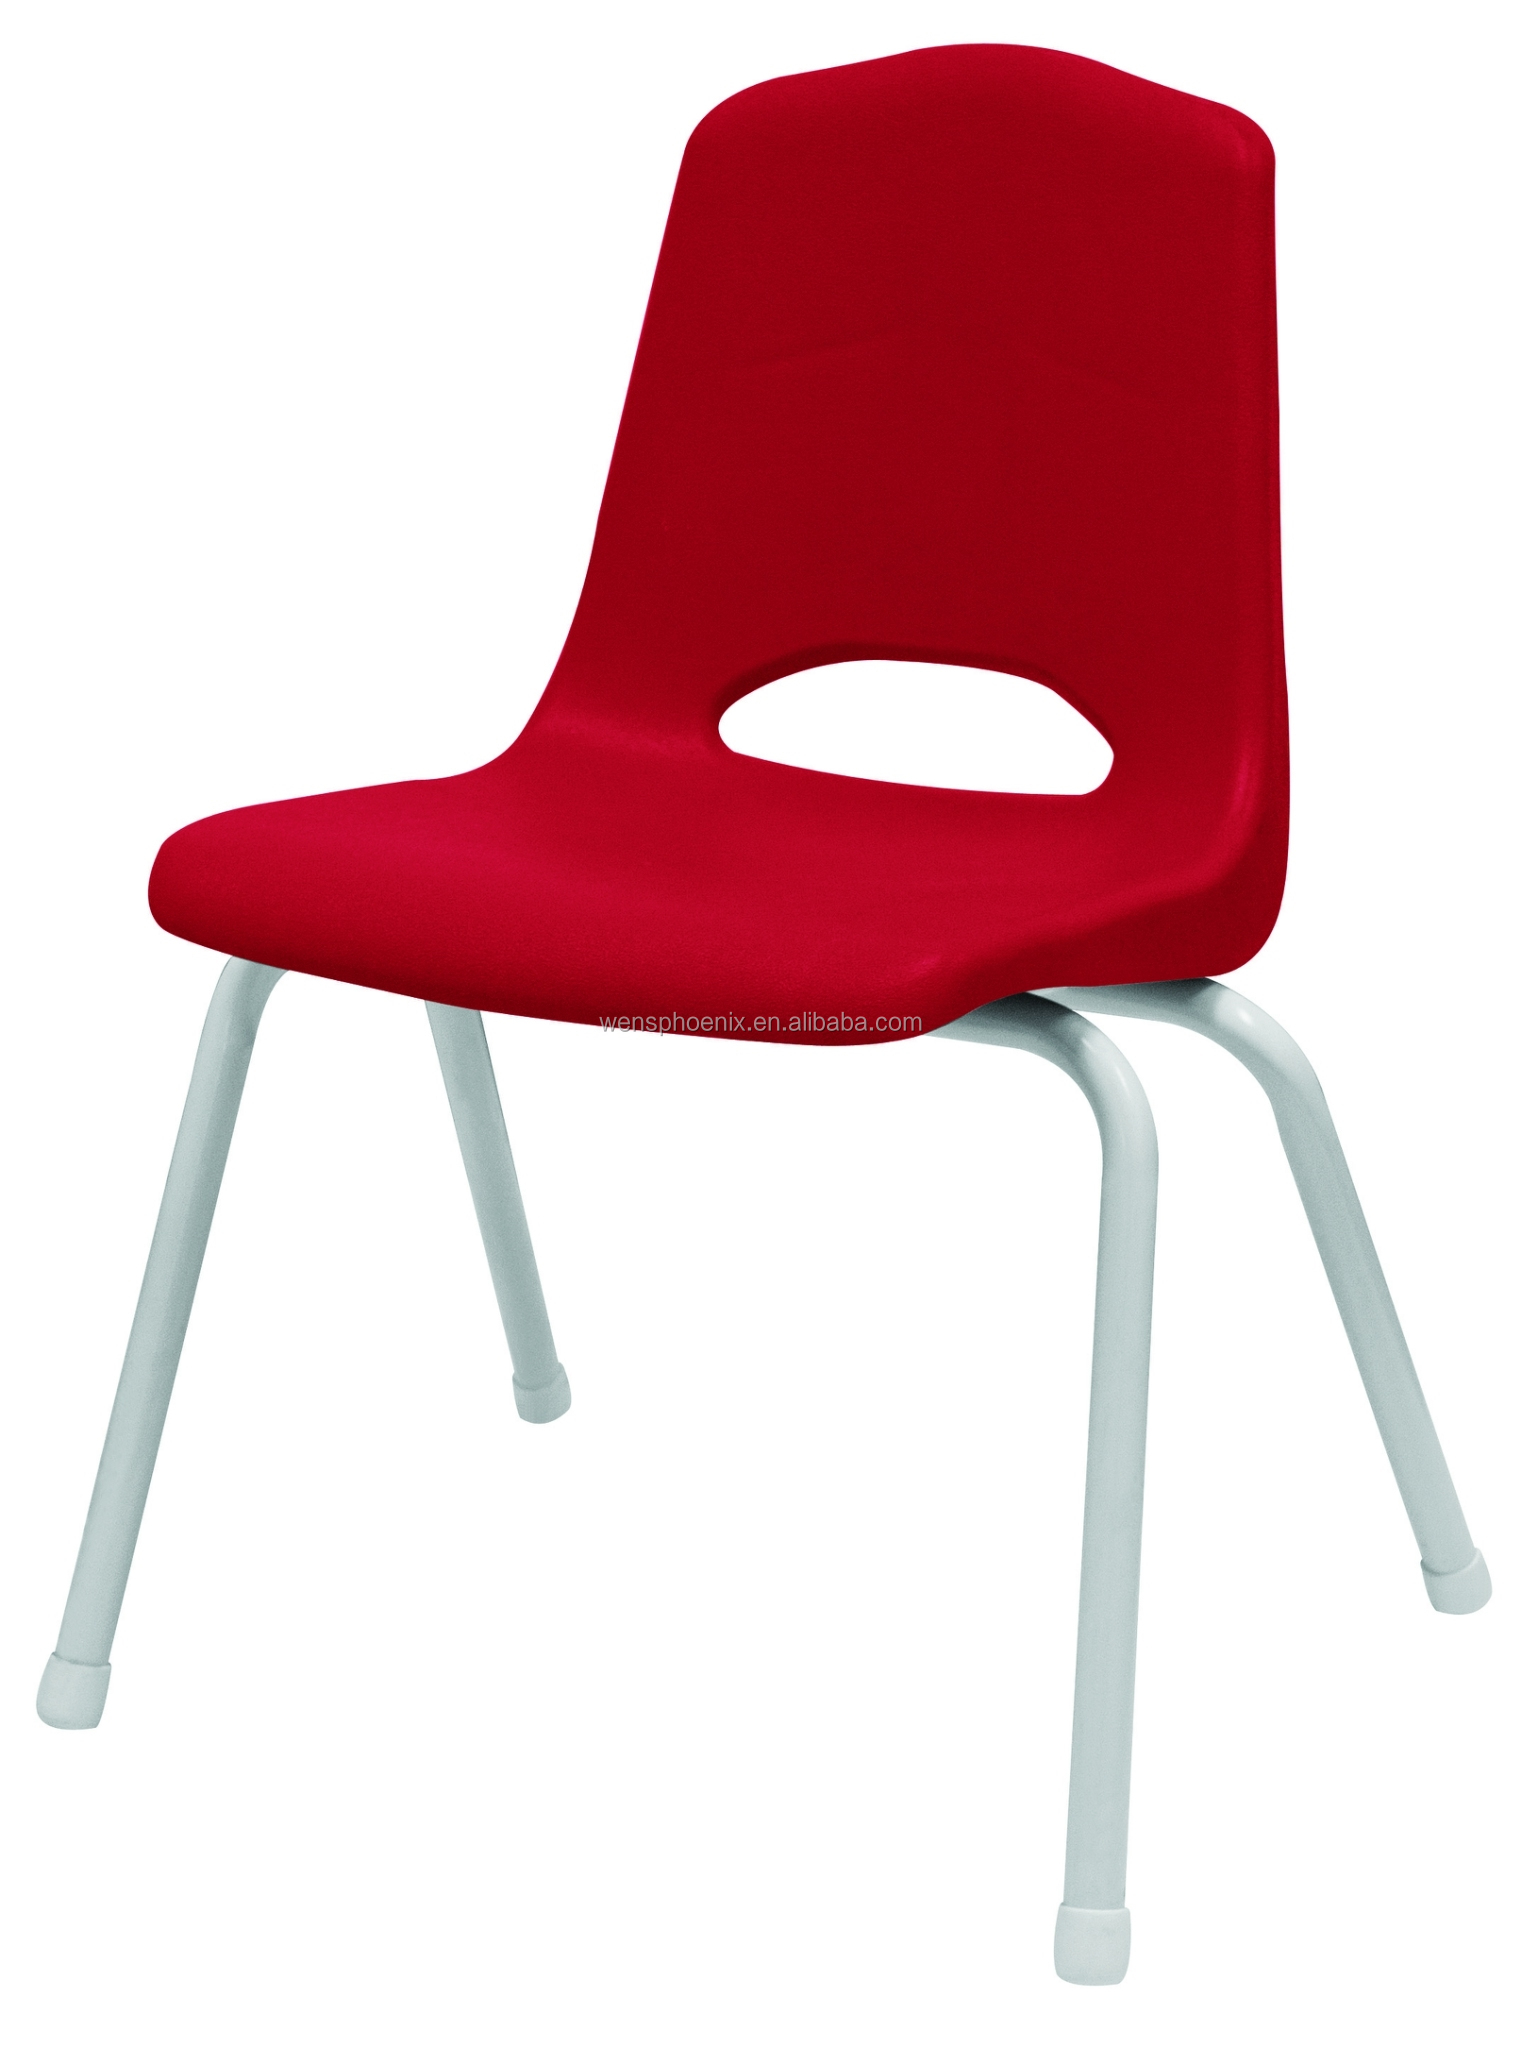 High-quality Student Chair - Buy School Student Shelf Desk And